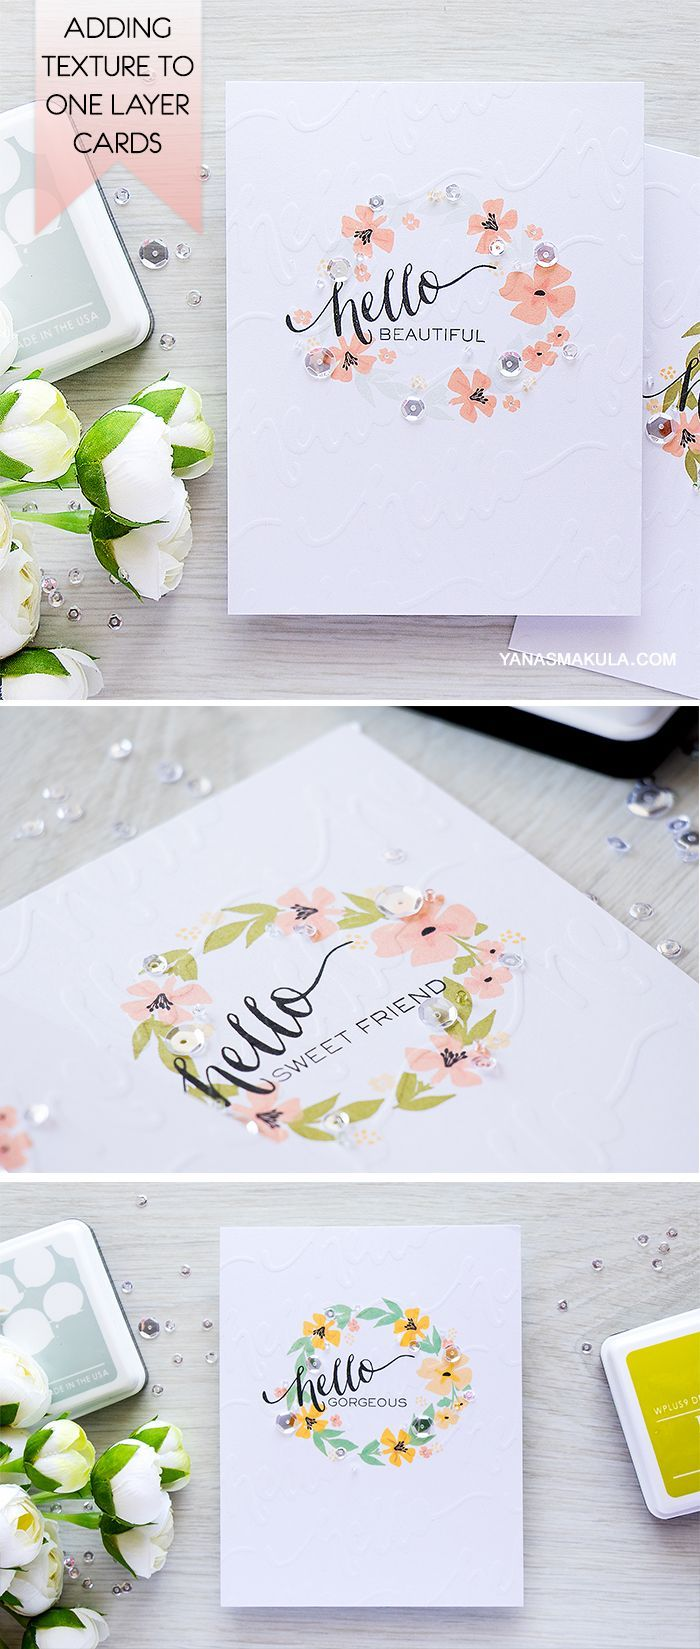 Add subtle texture to one layer cards with a DIY embossing plate made using dies! Create these cards with WPlus9 stamps and inks. For details and video tutorial visit http://www.yanasmakula.com/?p=54677